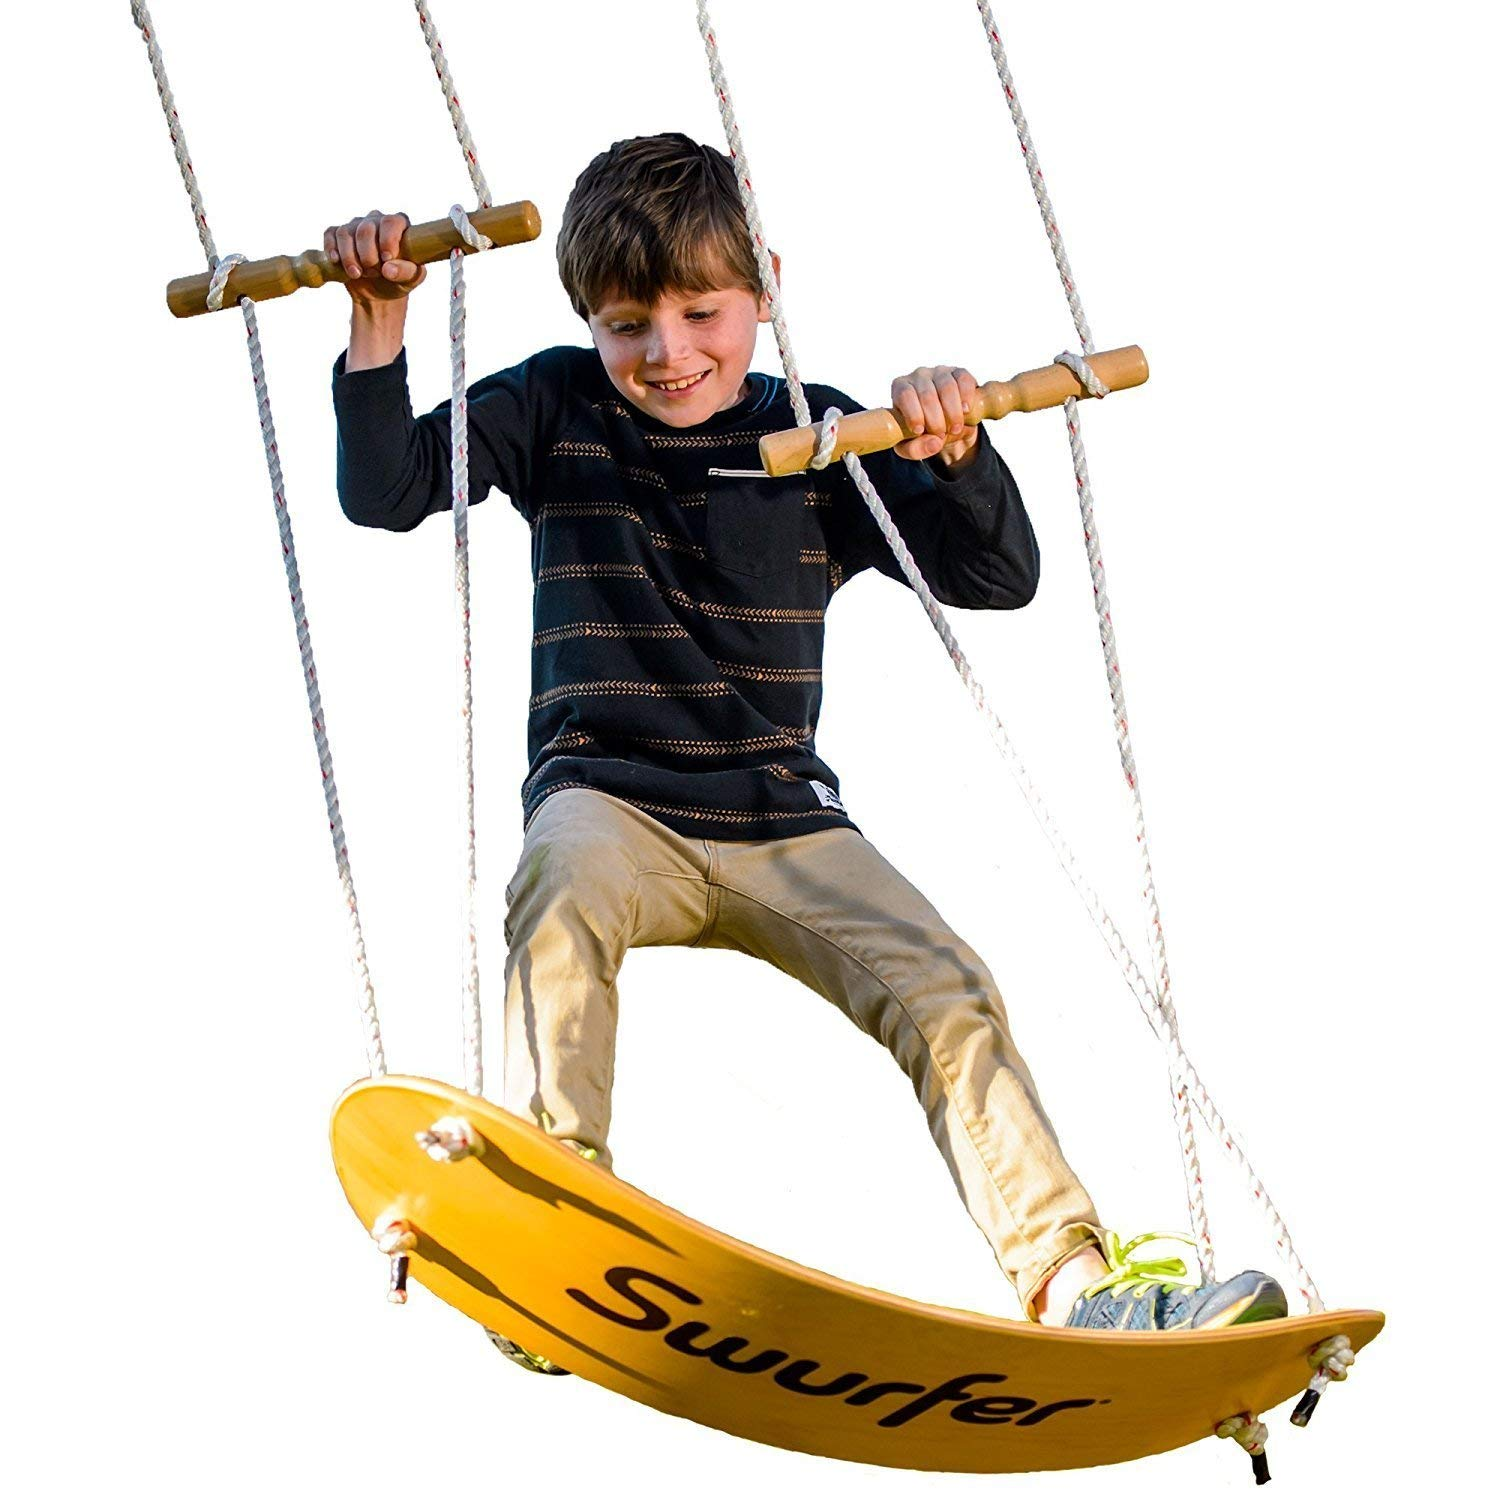 Swurfer - the Original Stand Up Surfing Swing